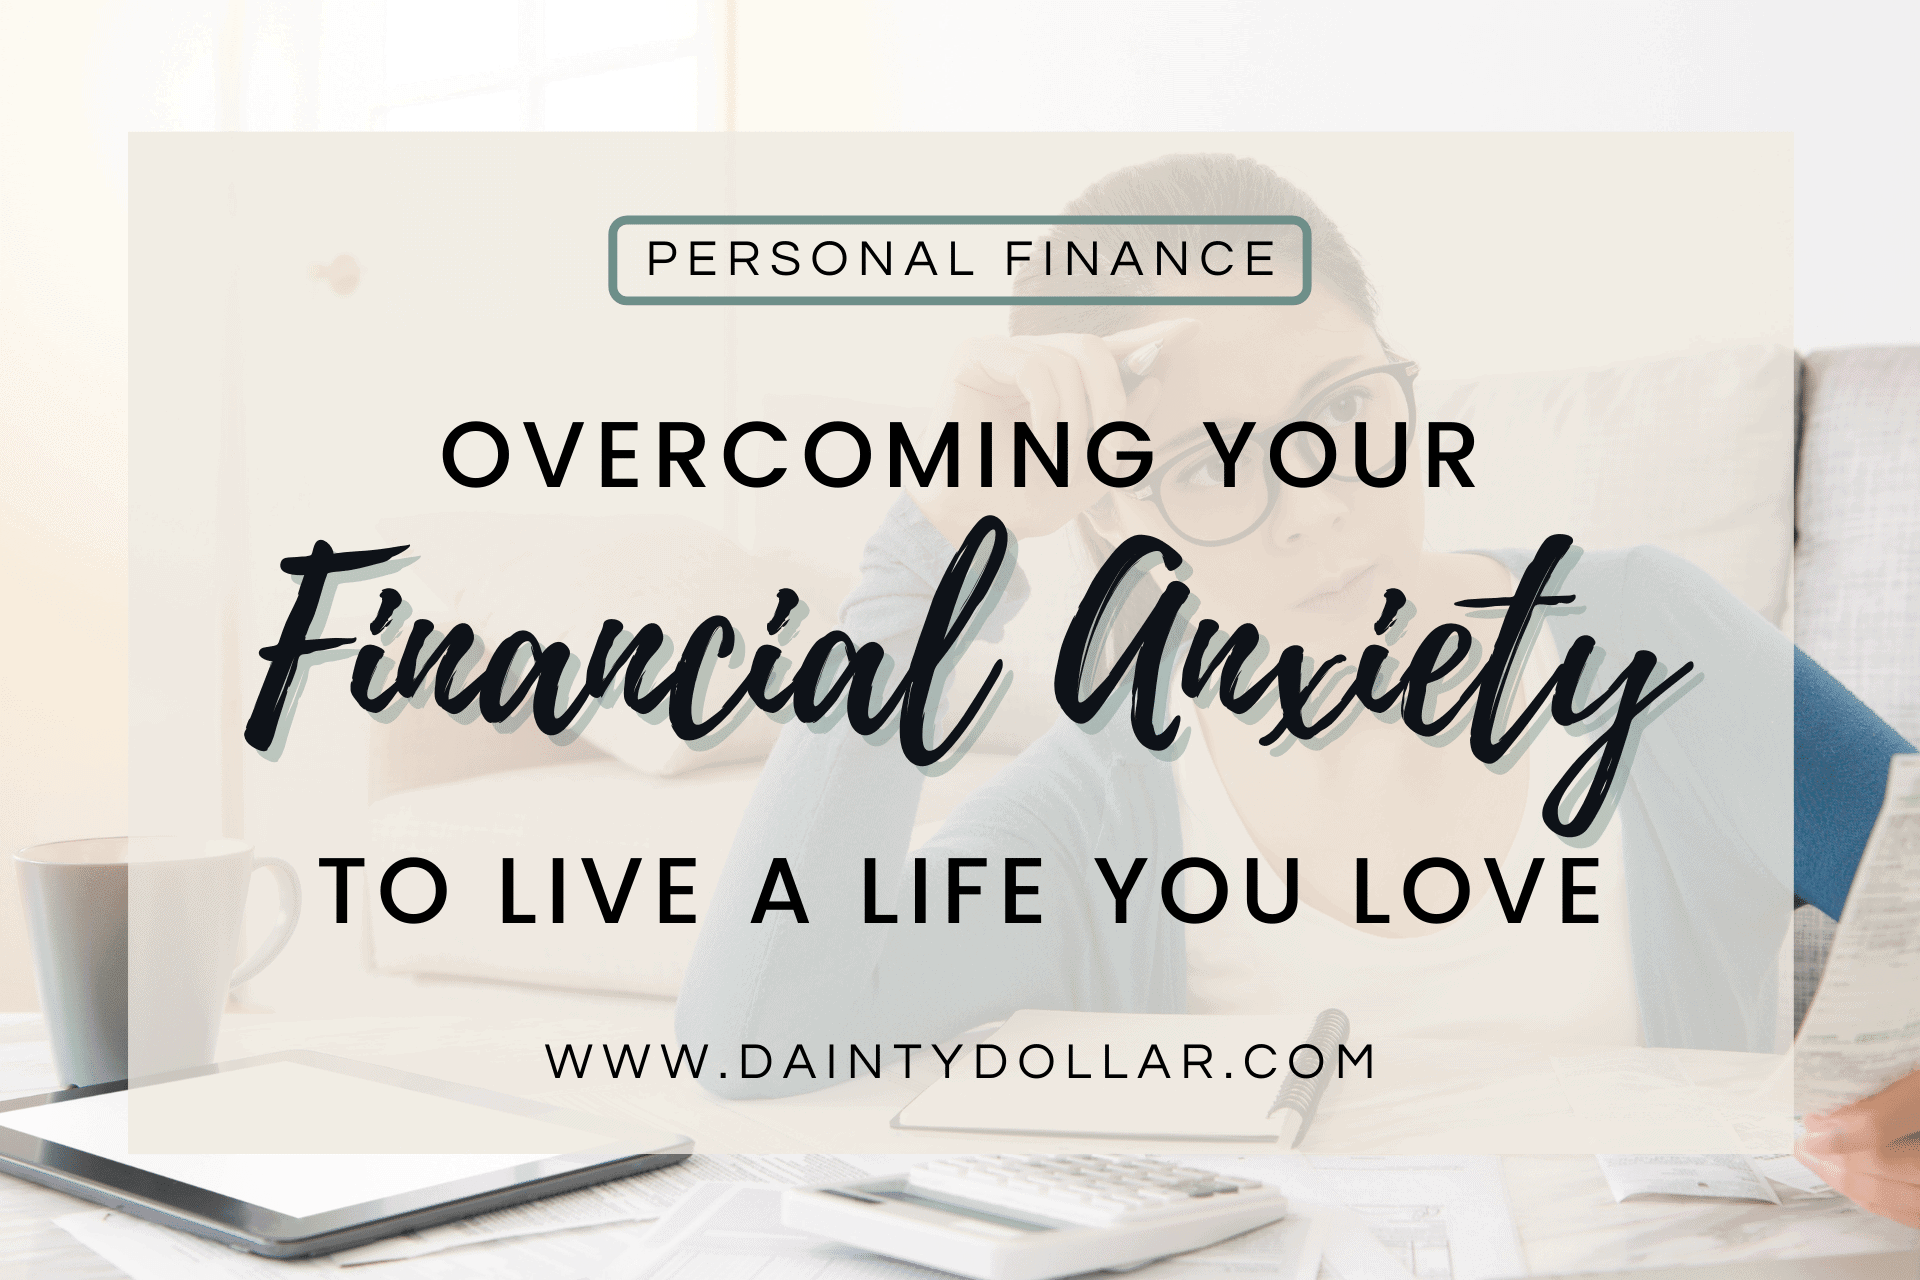 Dainty Dollar - Overcoming Your Financial Anxiety to Live a Life You Love